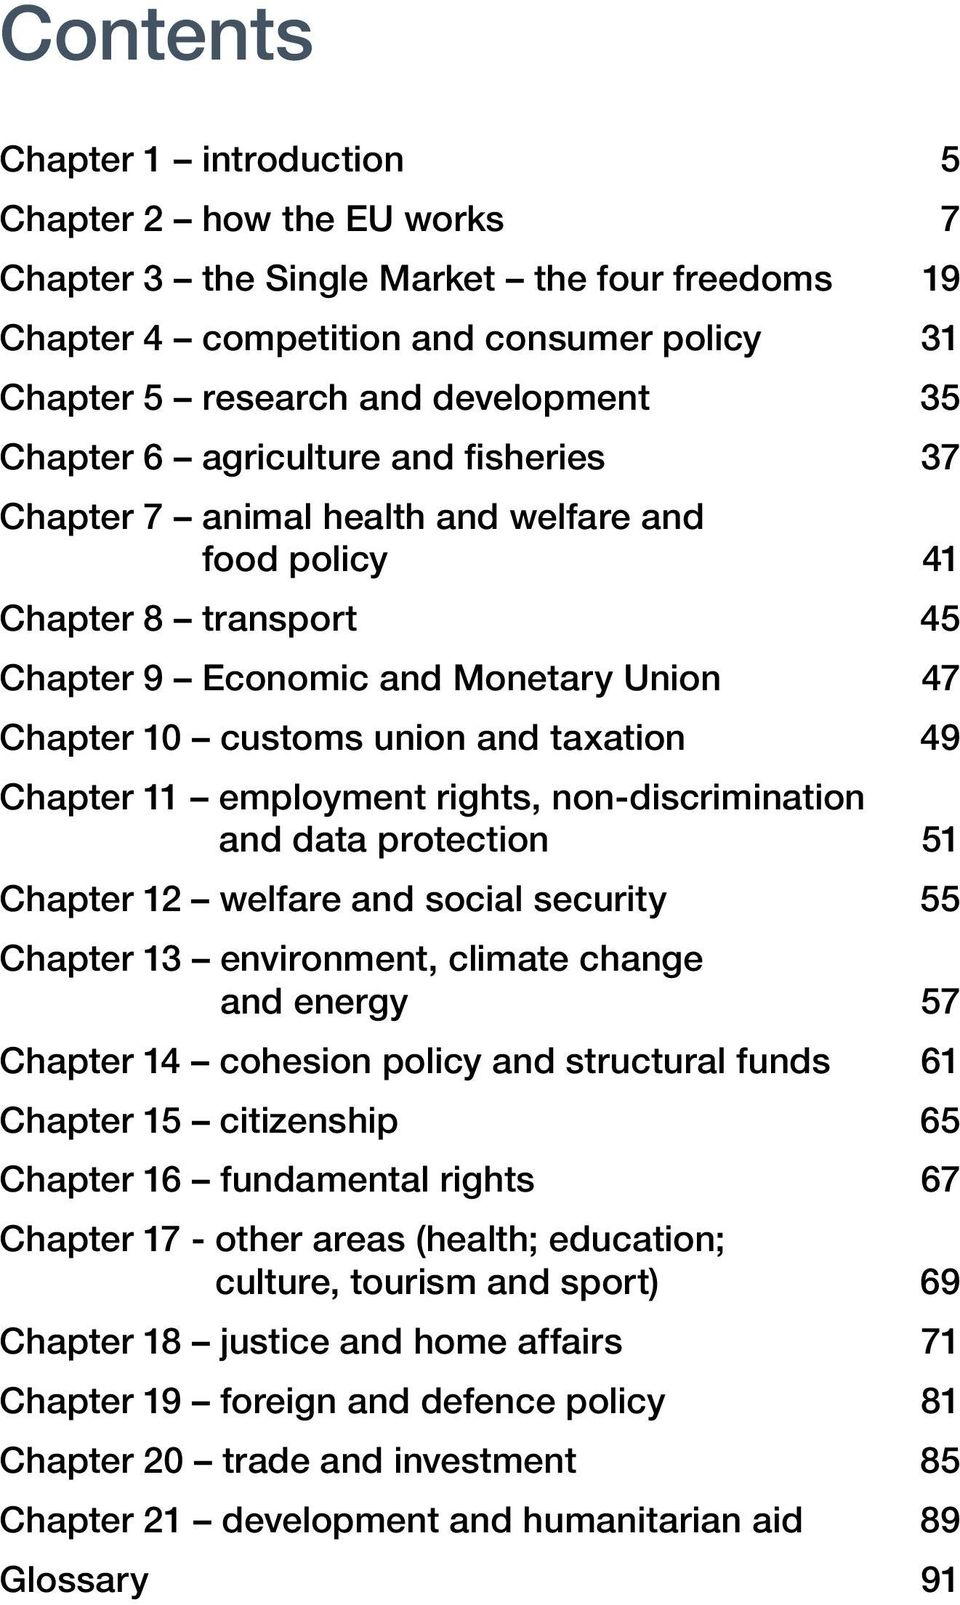 Chapter 11 employment rights, non-discrimination and data protection 51 Chapter 12 welfare and social security 55 Chapter 13 environment, climate change and energy 57 Chapter 14 cohesion policy and